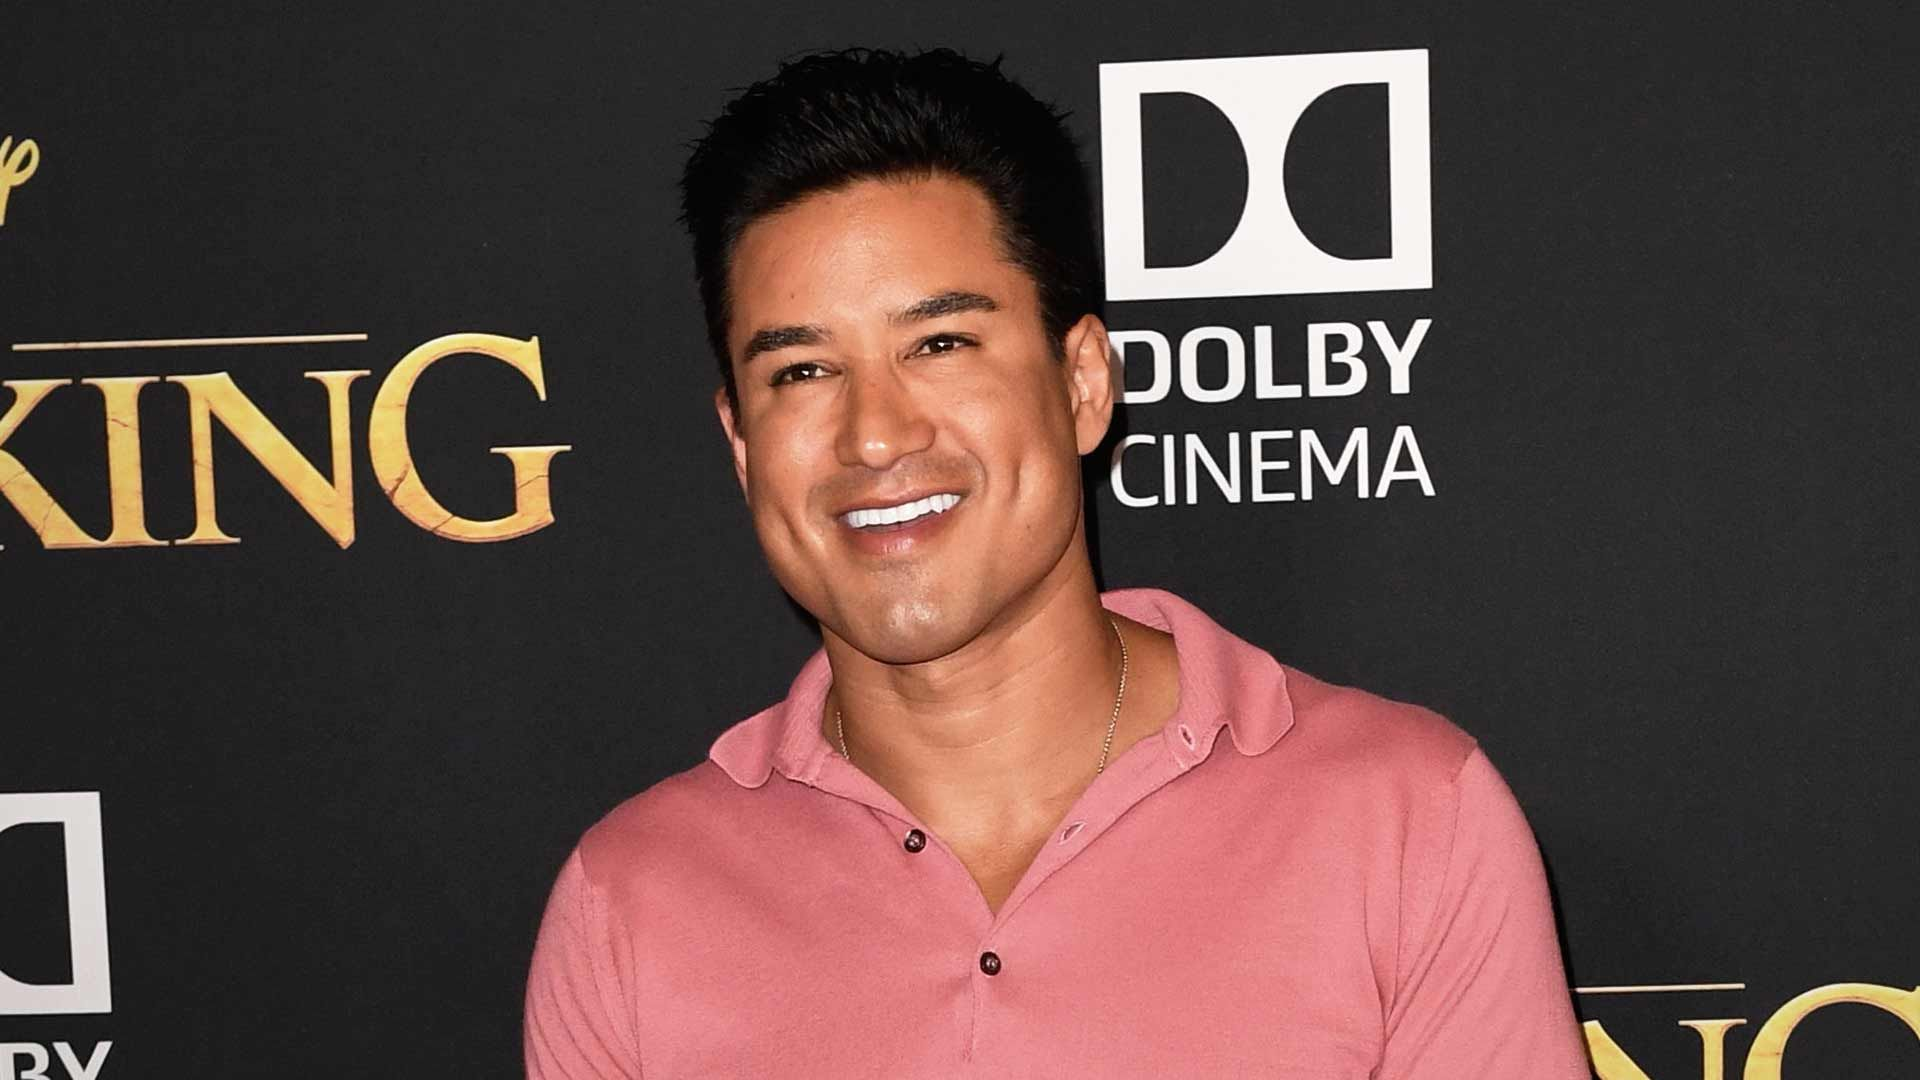 Mario Lopez S Son Was Born 4 Minutes Before Date He Actually Announced